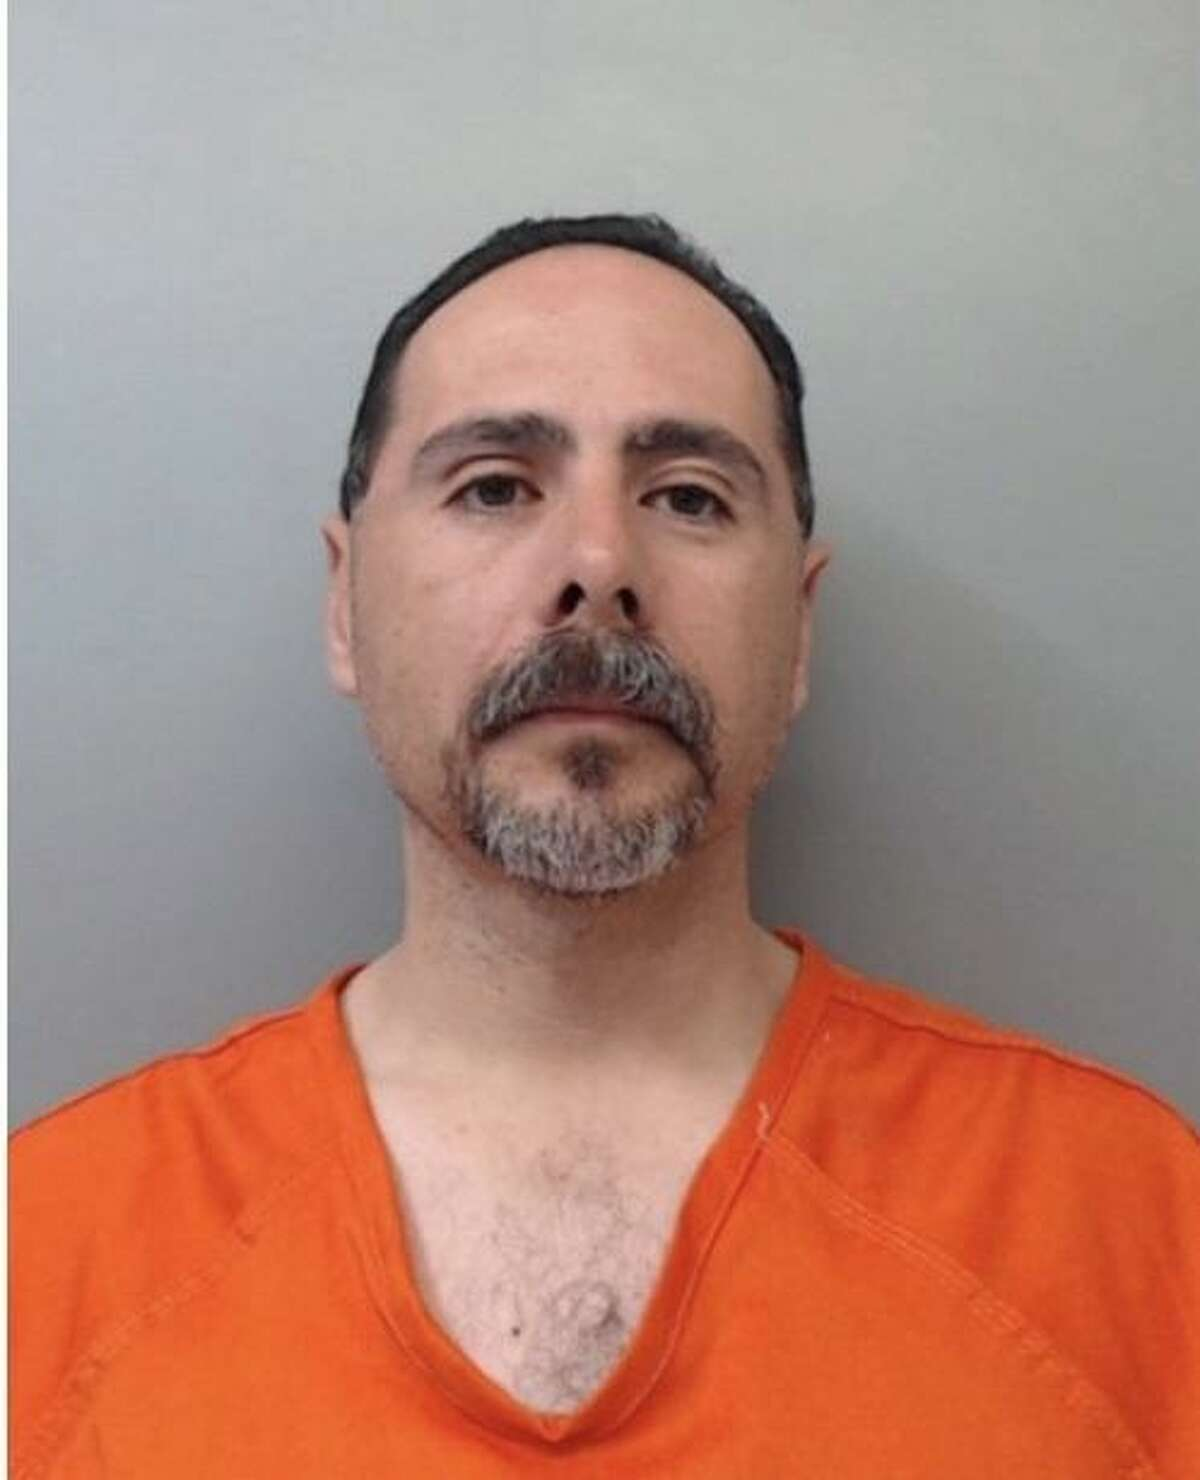 Anthony Carrillo Jr., a 26-year LPD veteran, was charged with four counts of tampering/fabricating with physical evidence with intent to impair and three counts of abuse of official capacity.